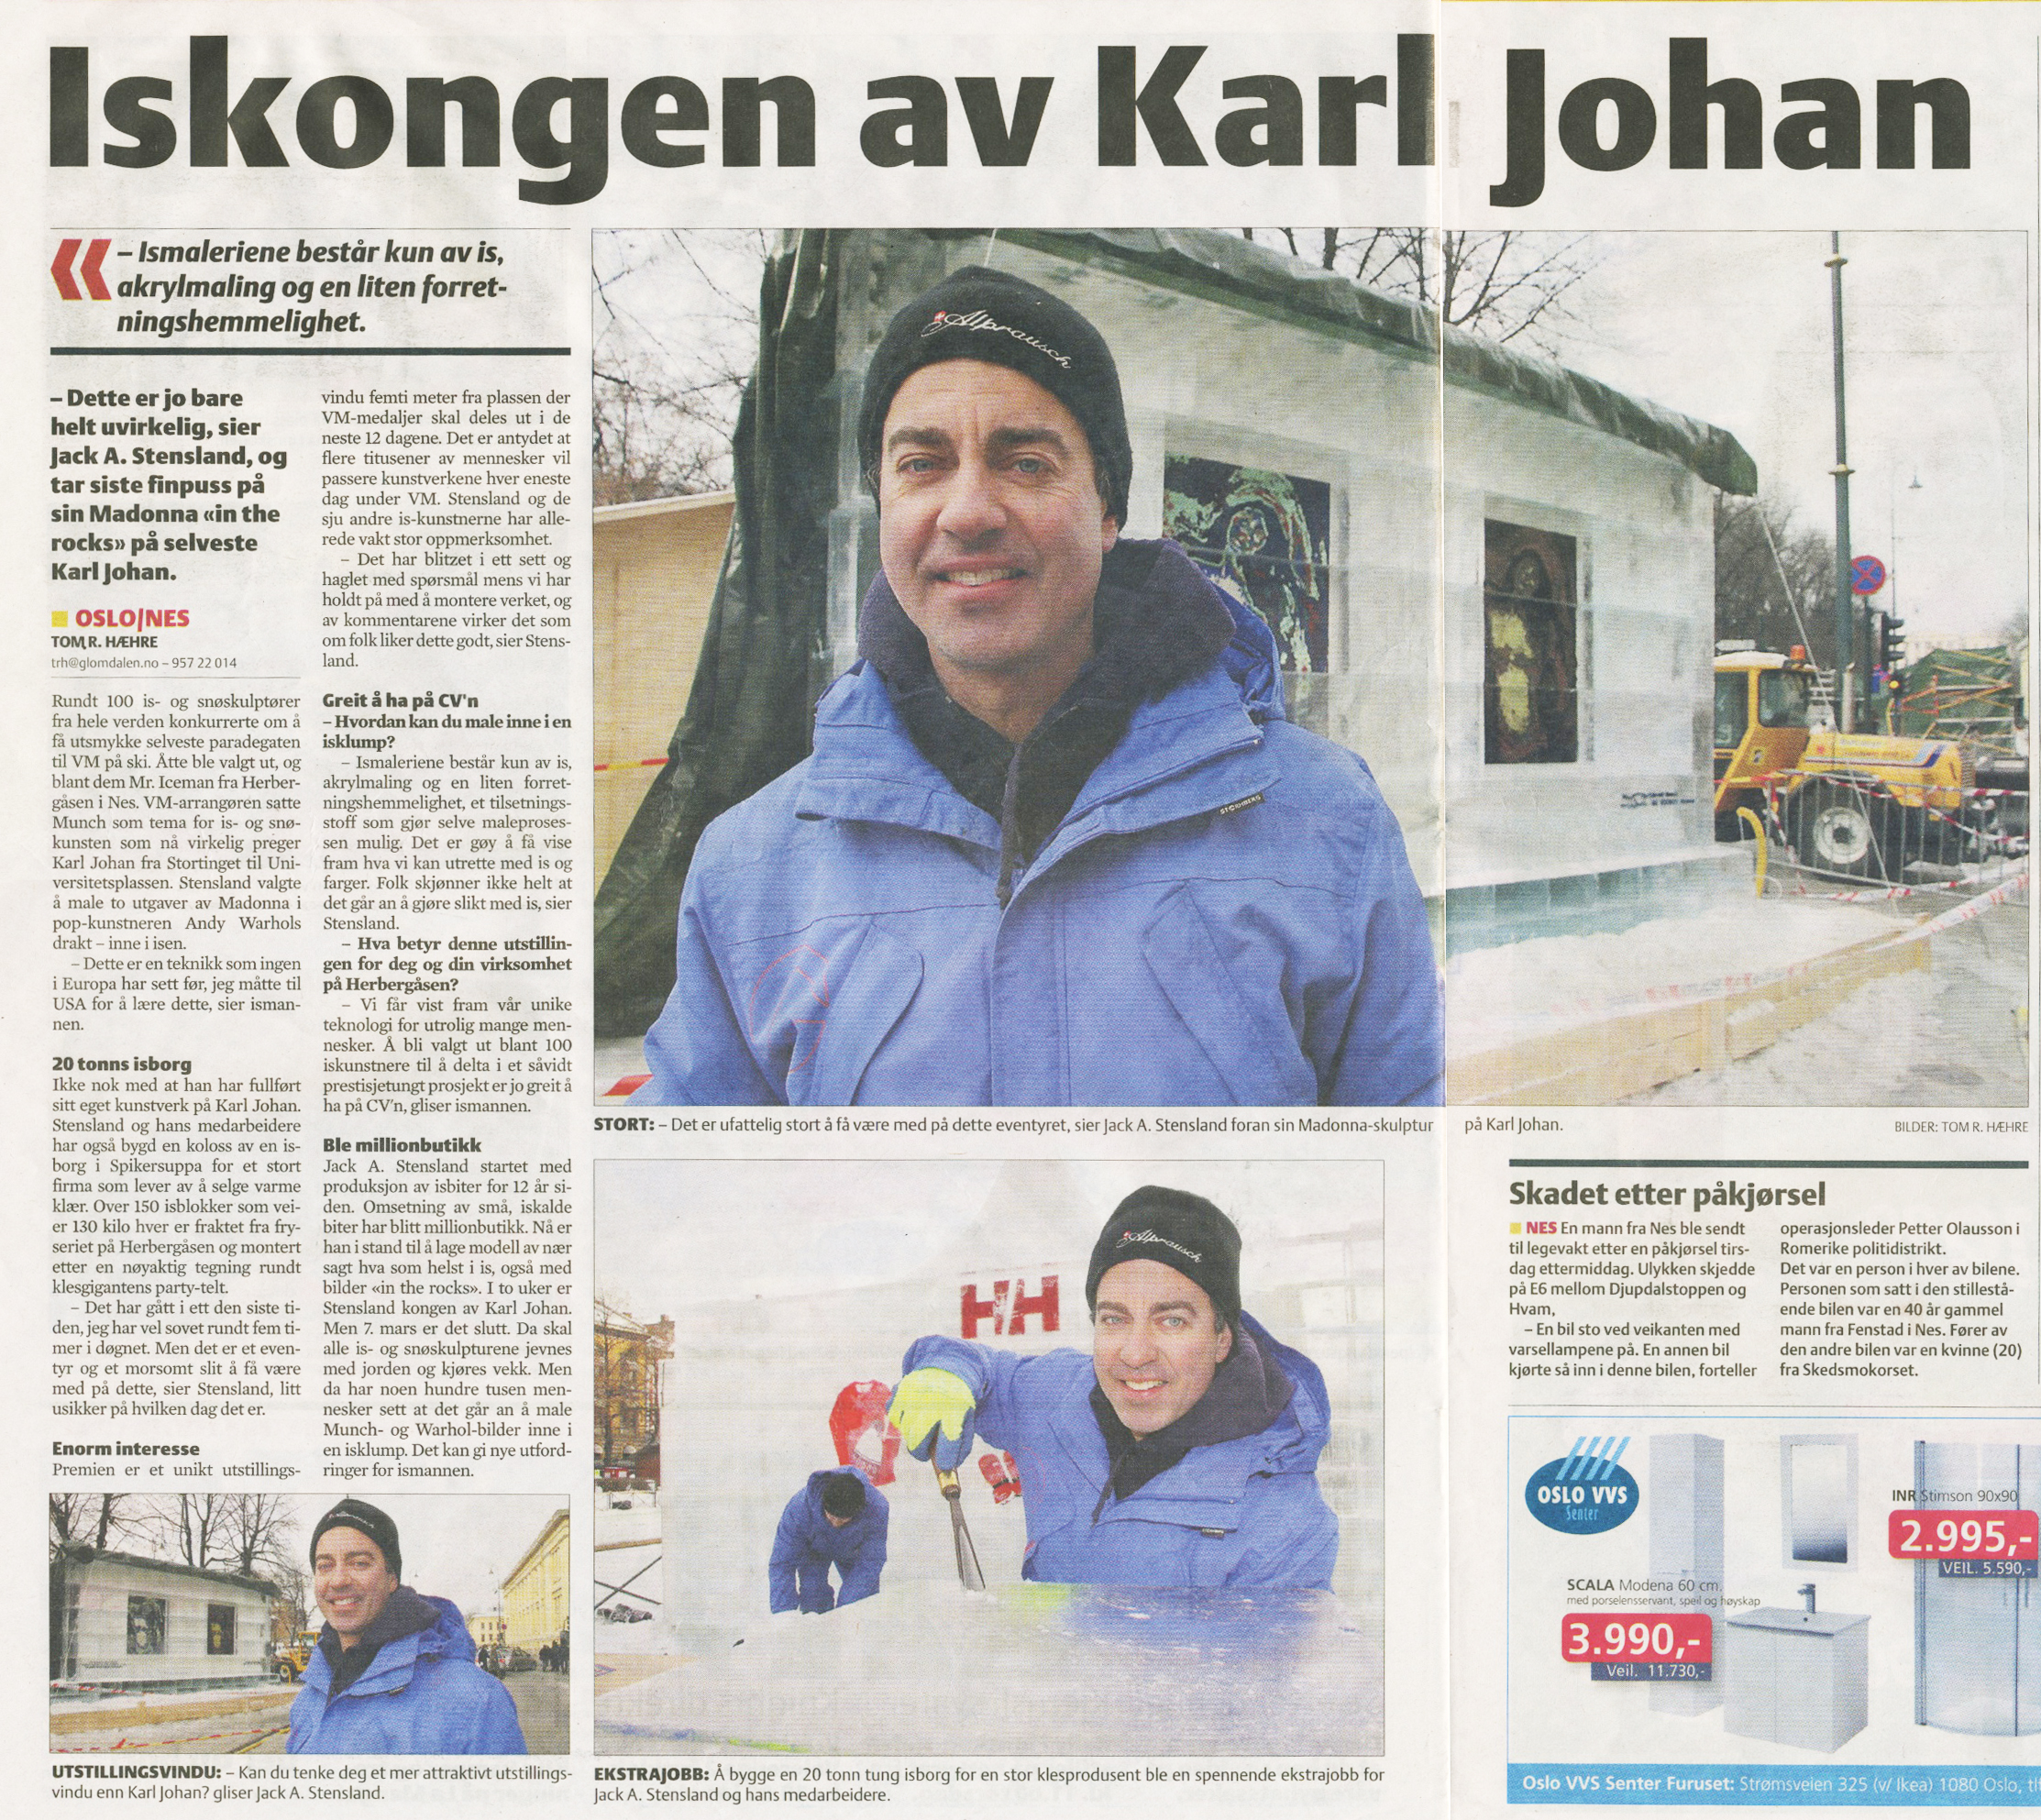 The Ice King of Karl Johan